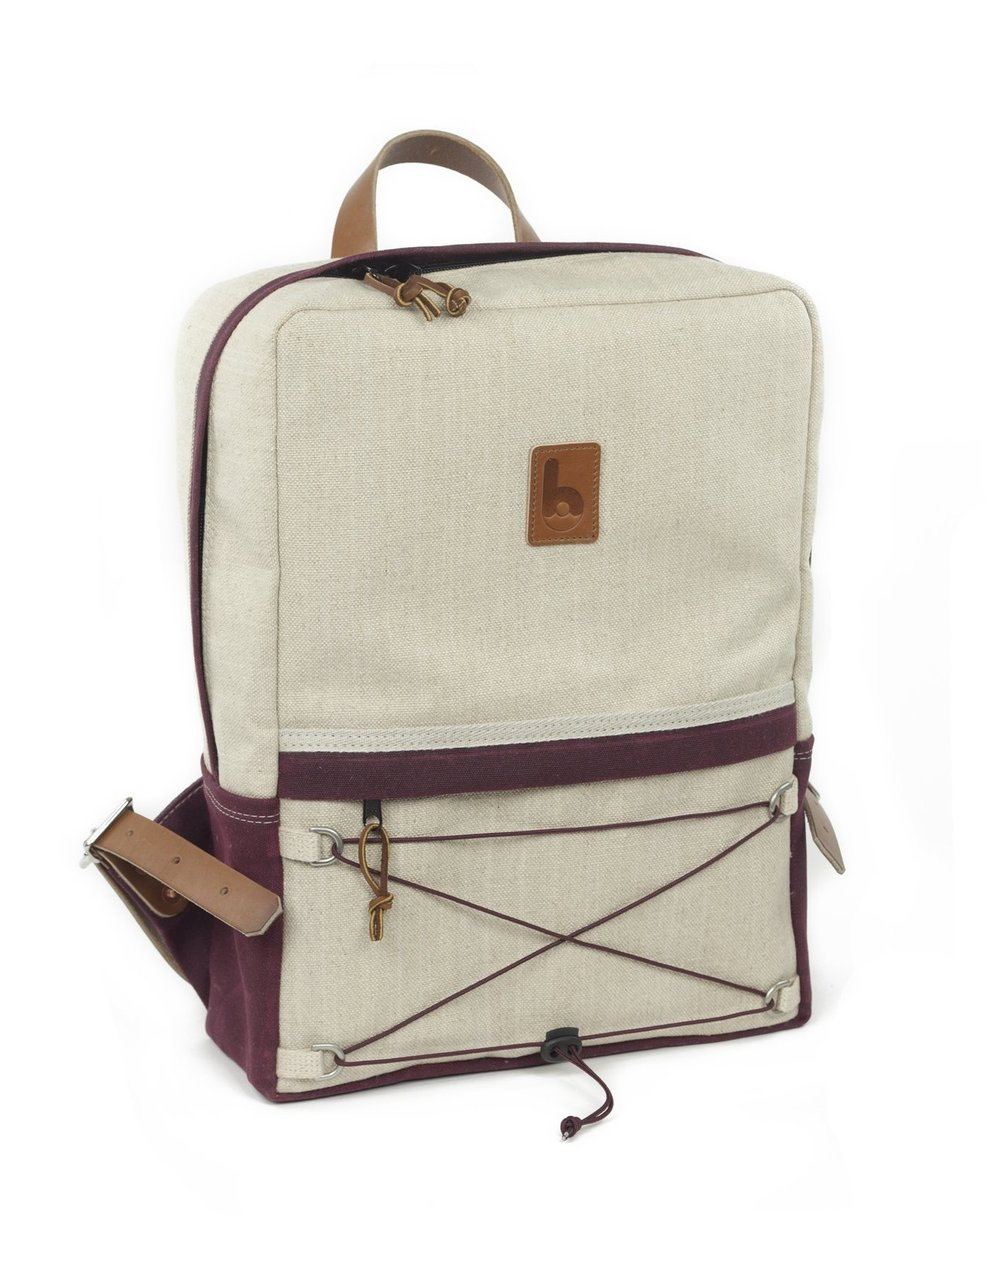 Harmonic Goods   Handcrafted backpacks, duffels, totes, and other durable soft goods